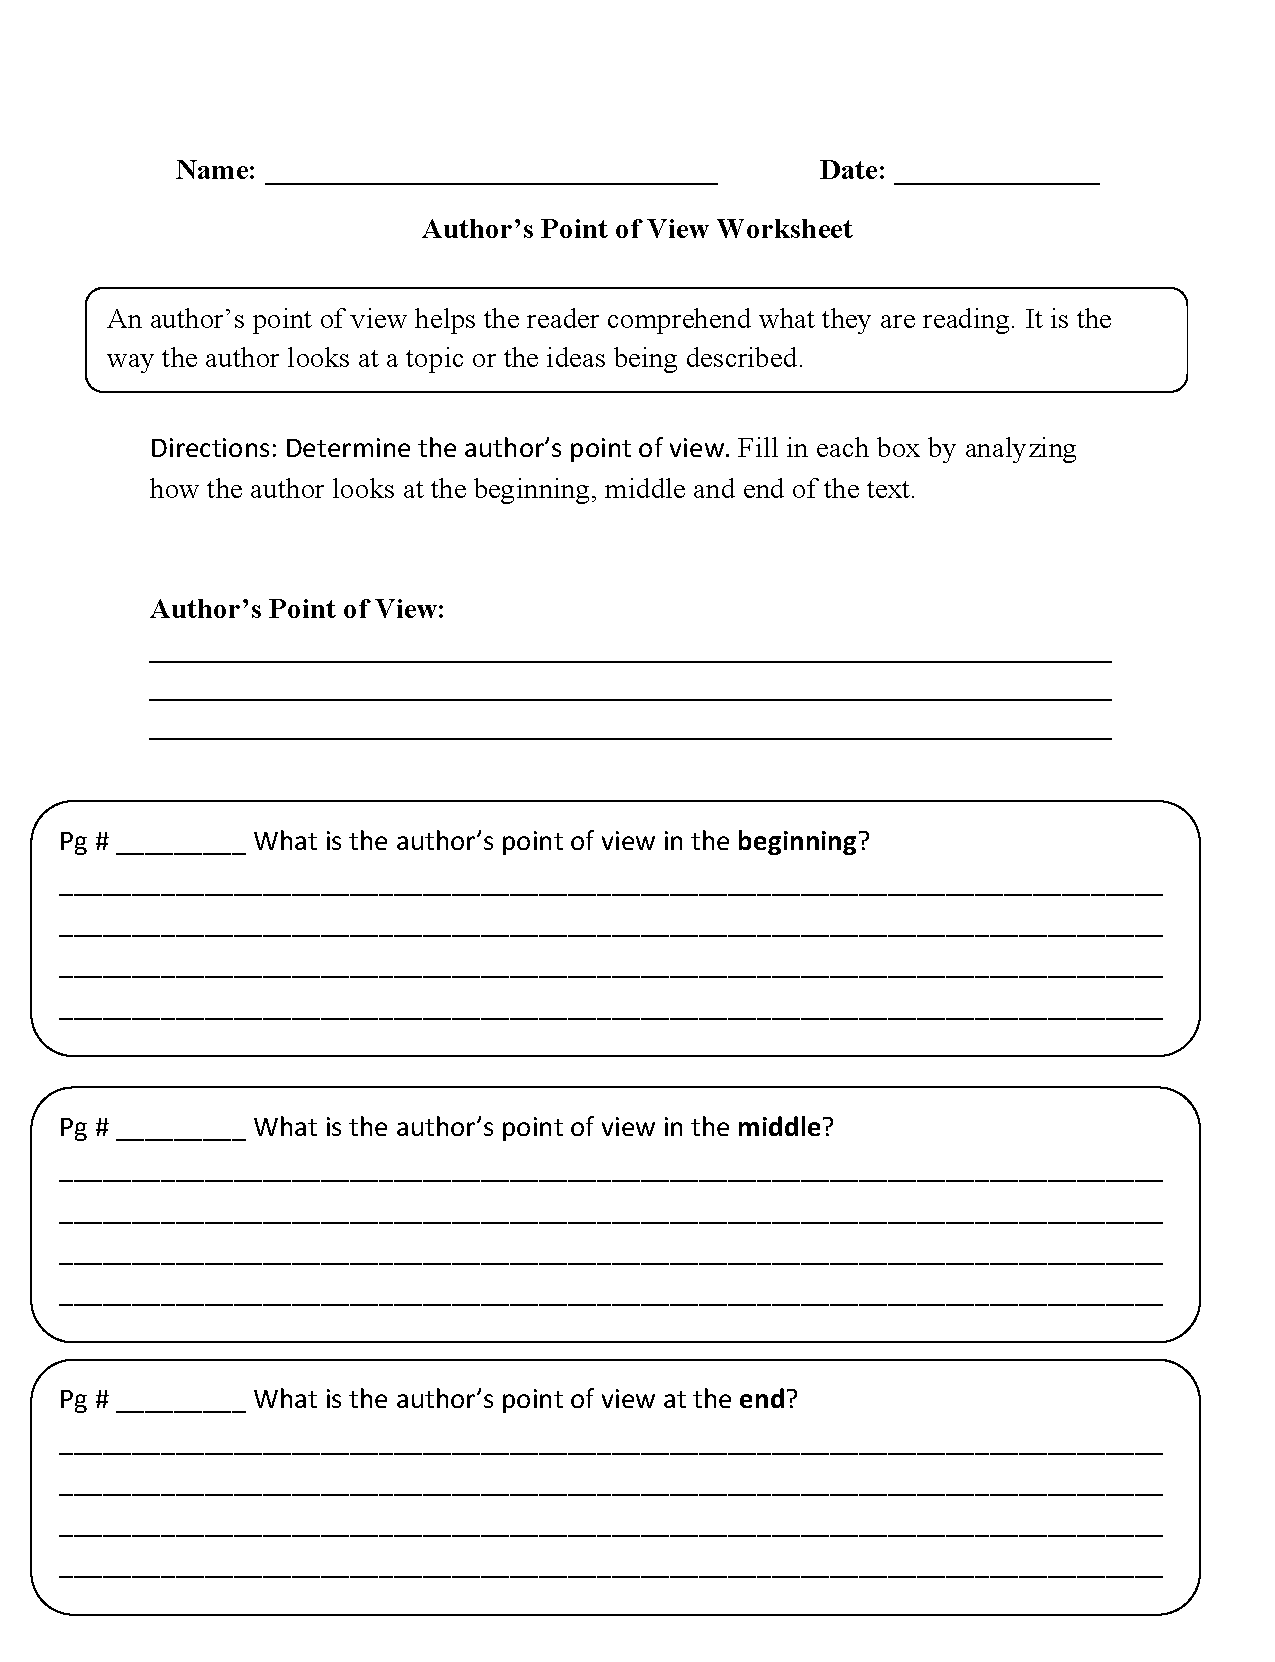 Weirdmailus  Sweet Englishlinxcom  Point Of View Worksheets With Interesting Point Of View Worksheets With Lovely Short Vowel A Worksheets Kindergarten Also Two Digit Divisor Worksheet In Addition Esl Preschool Worksheets And Writing Short Sentences Worksheets As Well As Daily Inventory Worksheet Additionally Us States And Capitals Printable Worksheets From Englishlinxcom With Weirdmailus  Interesting Englishlinxcom  Point Of View Worksheets With Lovely Point Of View Worksheets And Sweet Short Vowel A Worksheets Kindergarten Also Two Digit Divisor Worksheet In Addition Esl Preschool Worksheets From Englishlinxcom